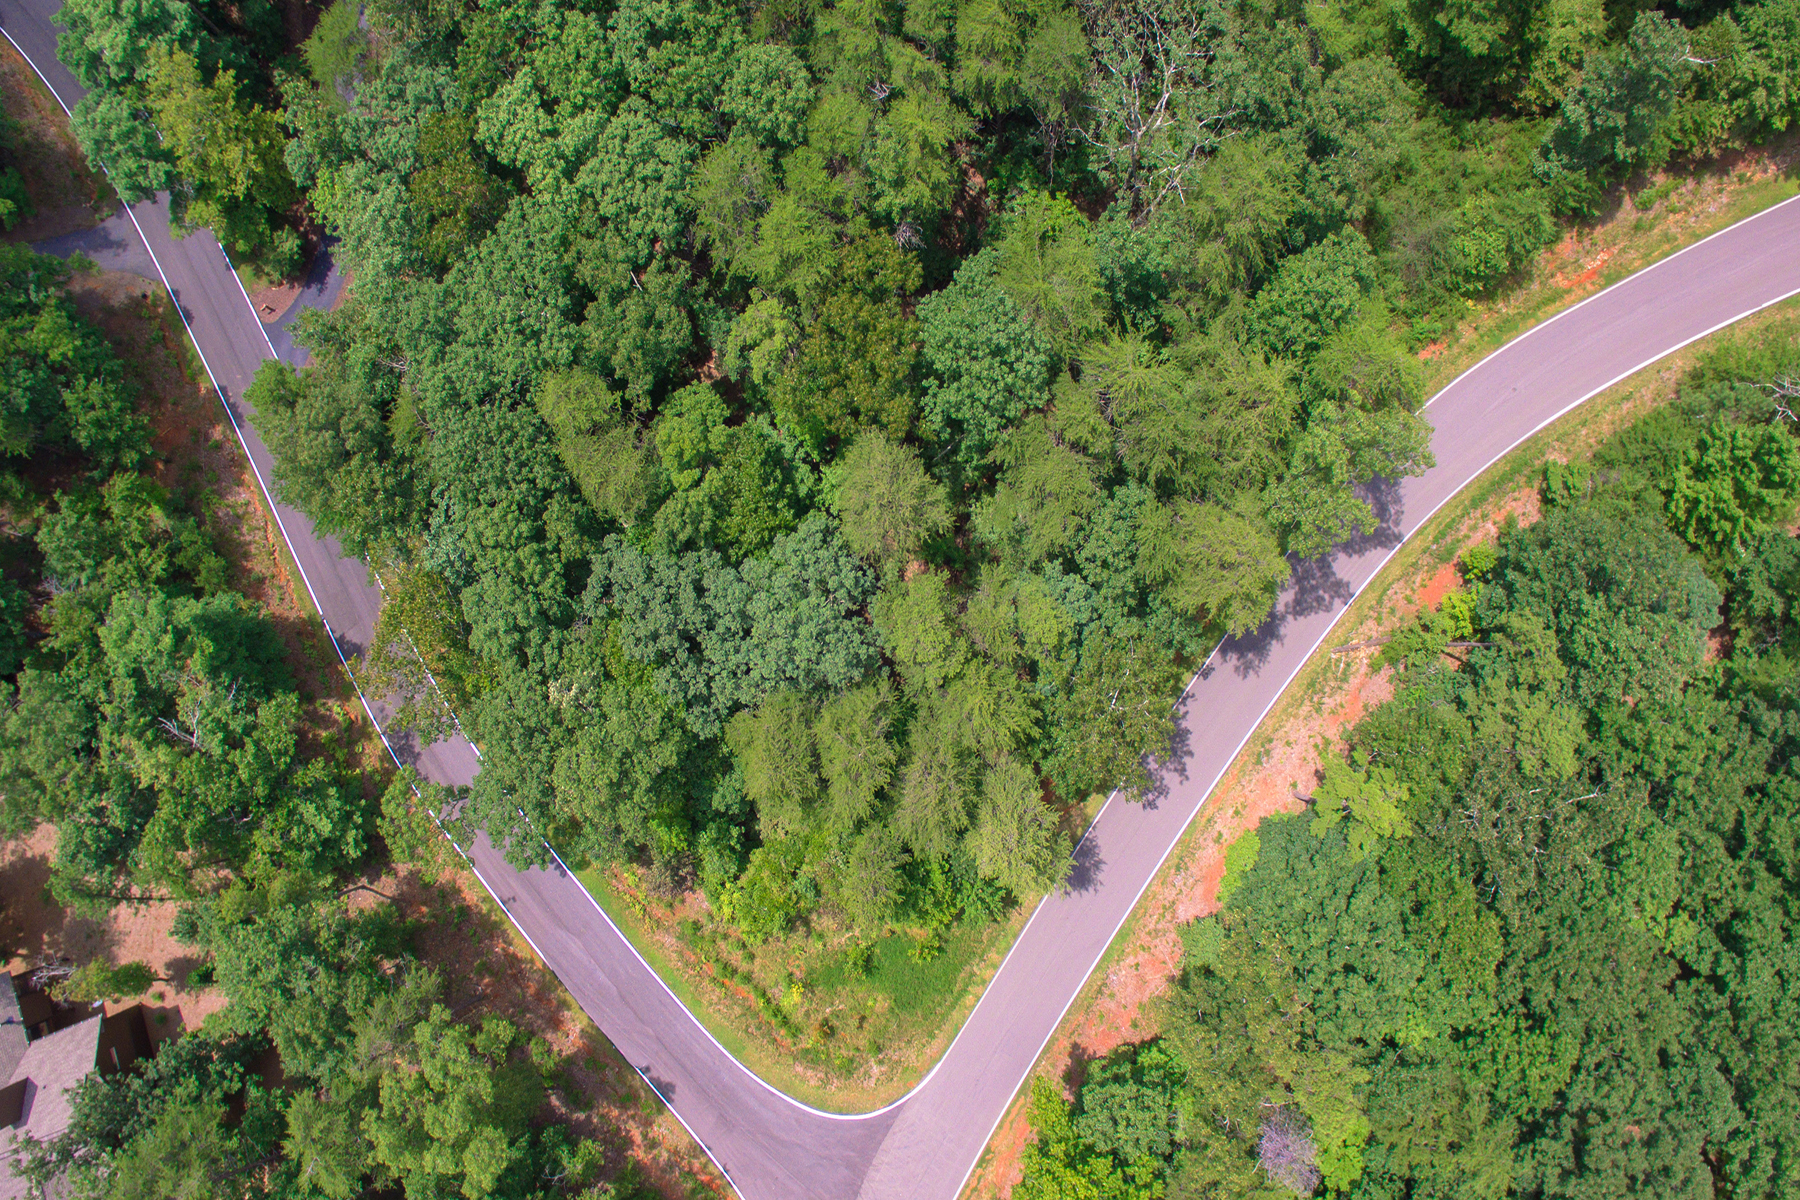 Land for Sale at One Acre Level Lot in Gerogia's Big Canoe Development 285 Bear Creek Drive Big Canoe, Georgia 30143 United States